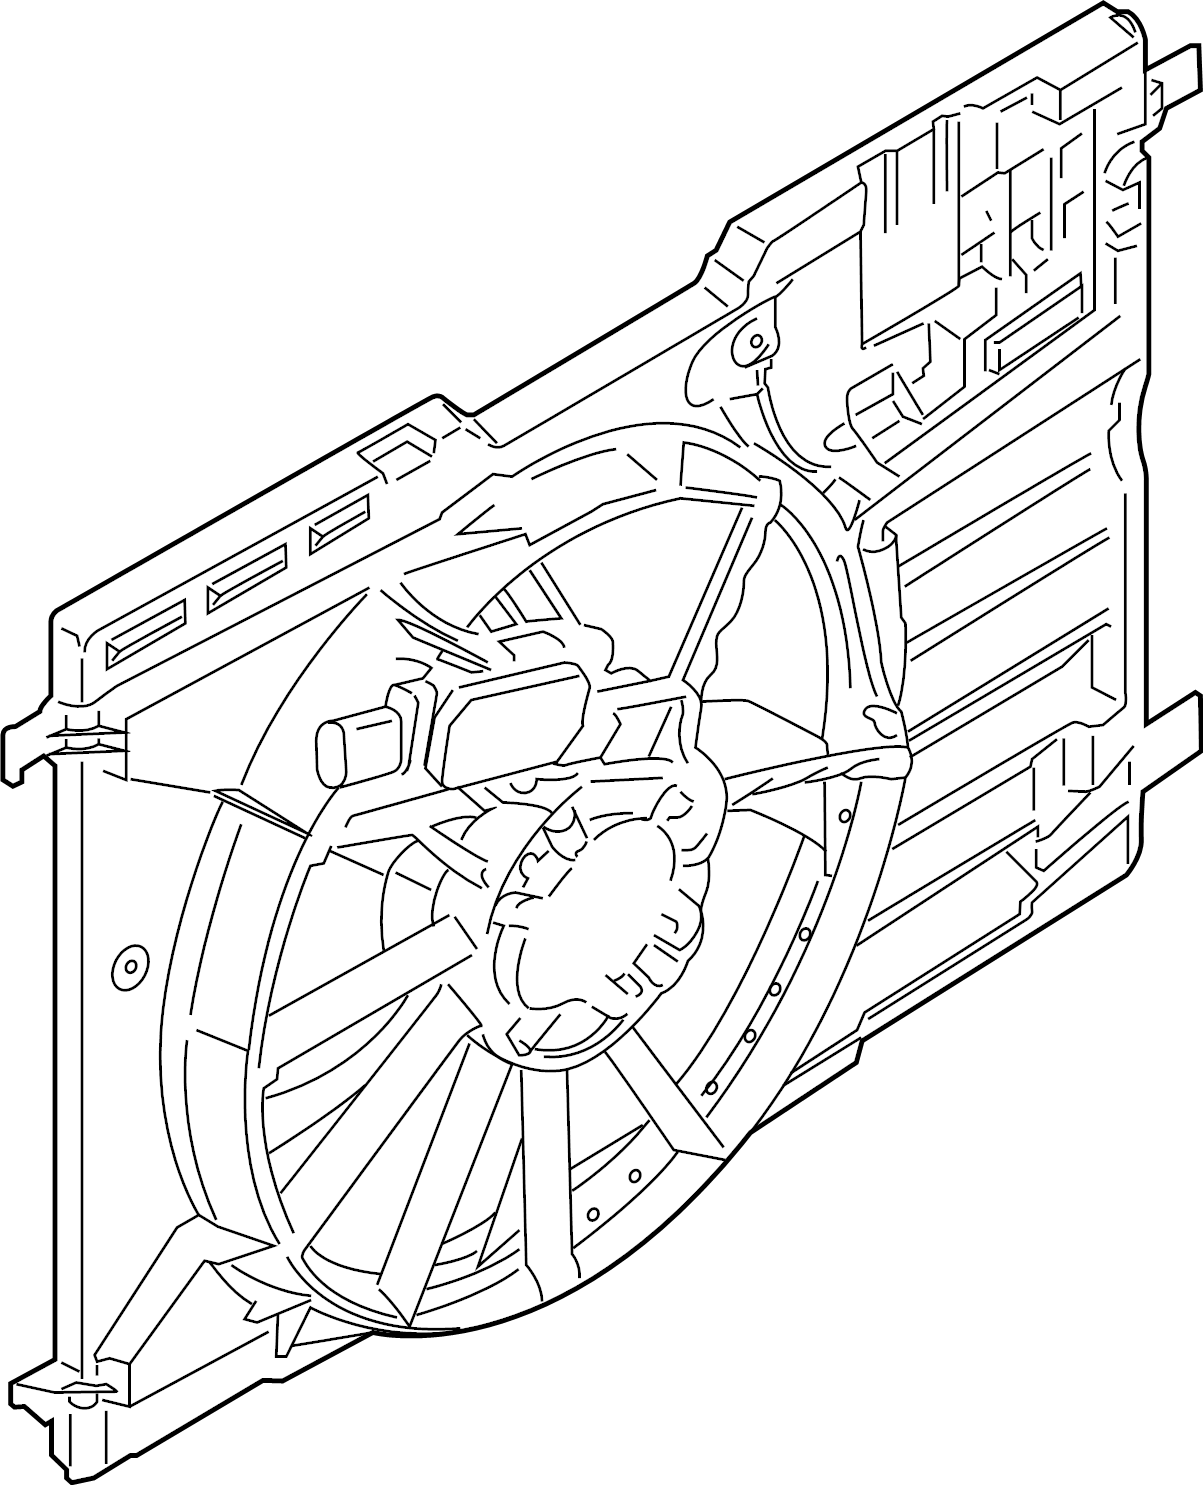 Ford Focus Engine Cooling Fan Assembly Liter